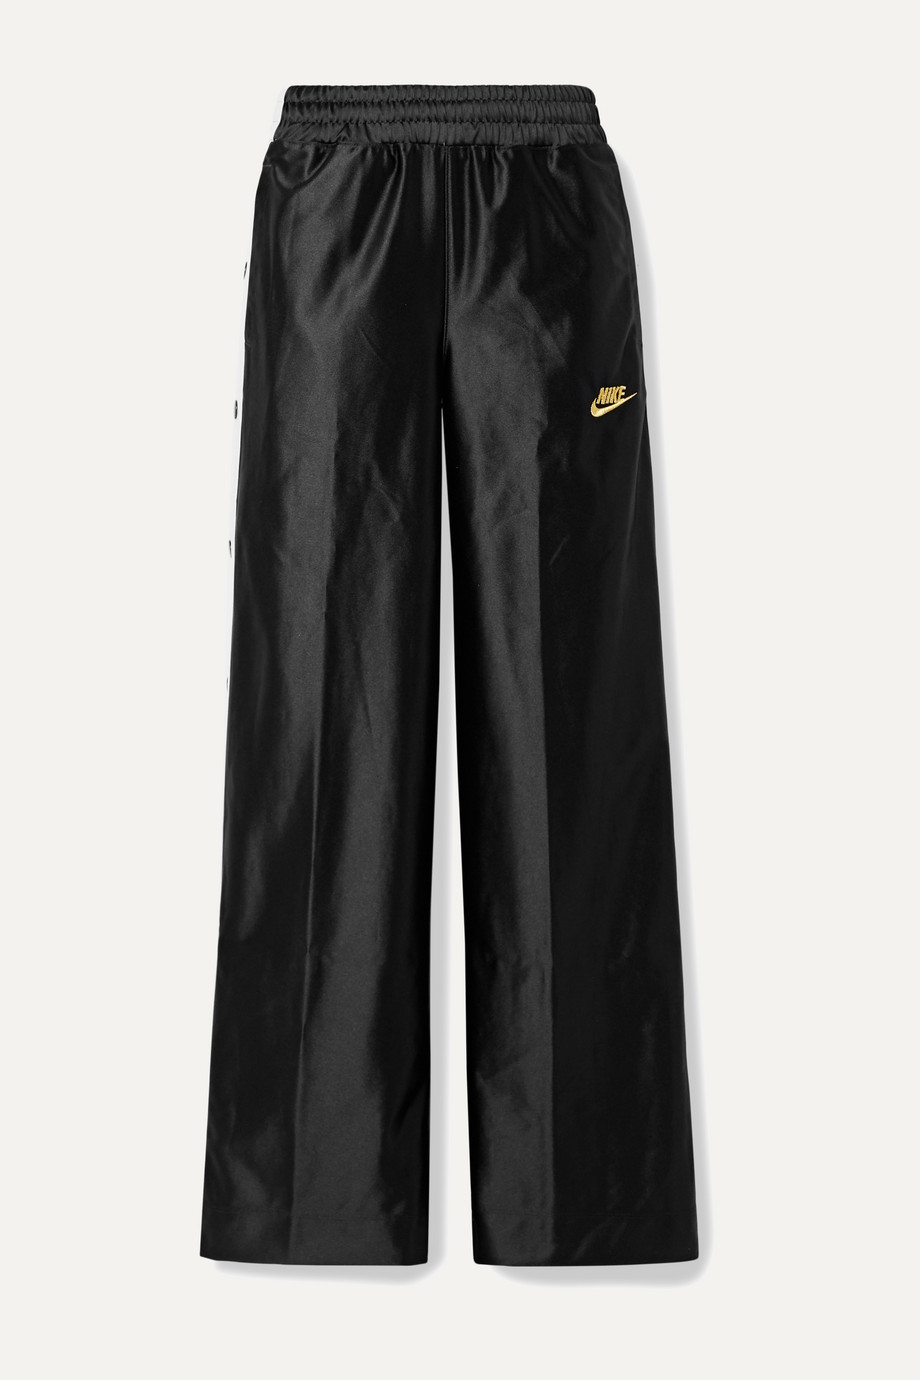 Nike Glam Dunk striped satin-jersey track pants